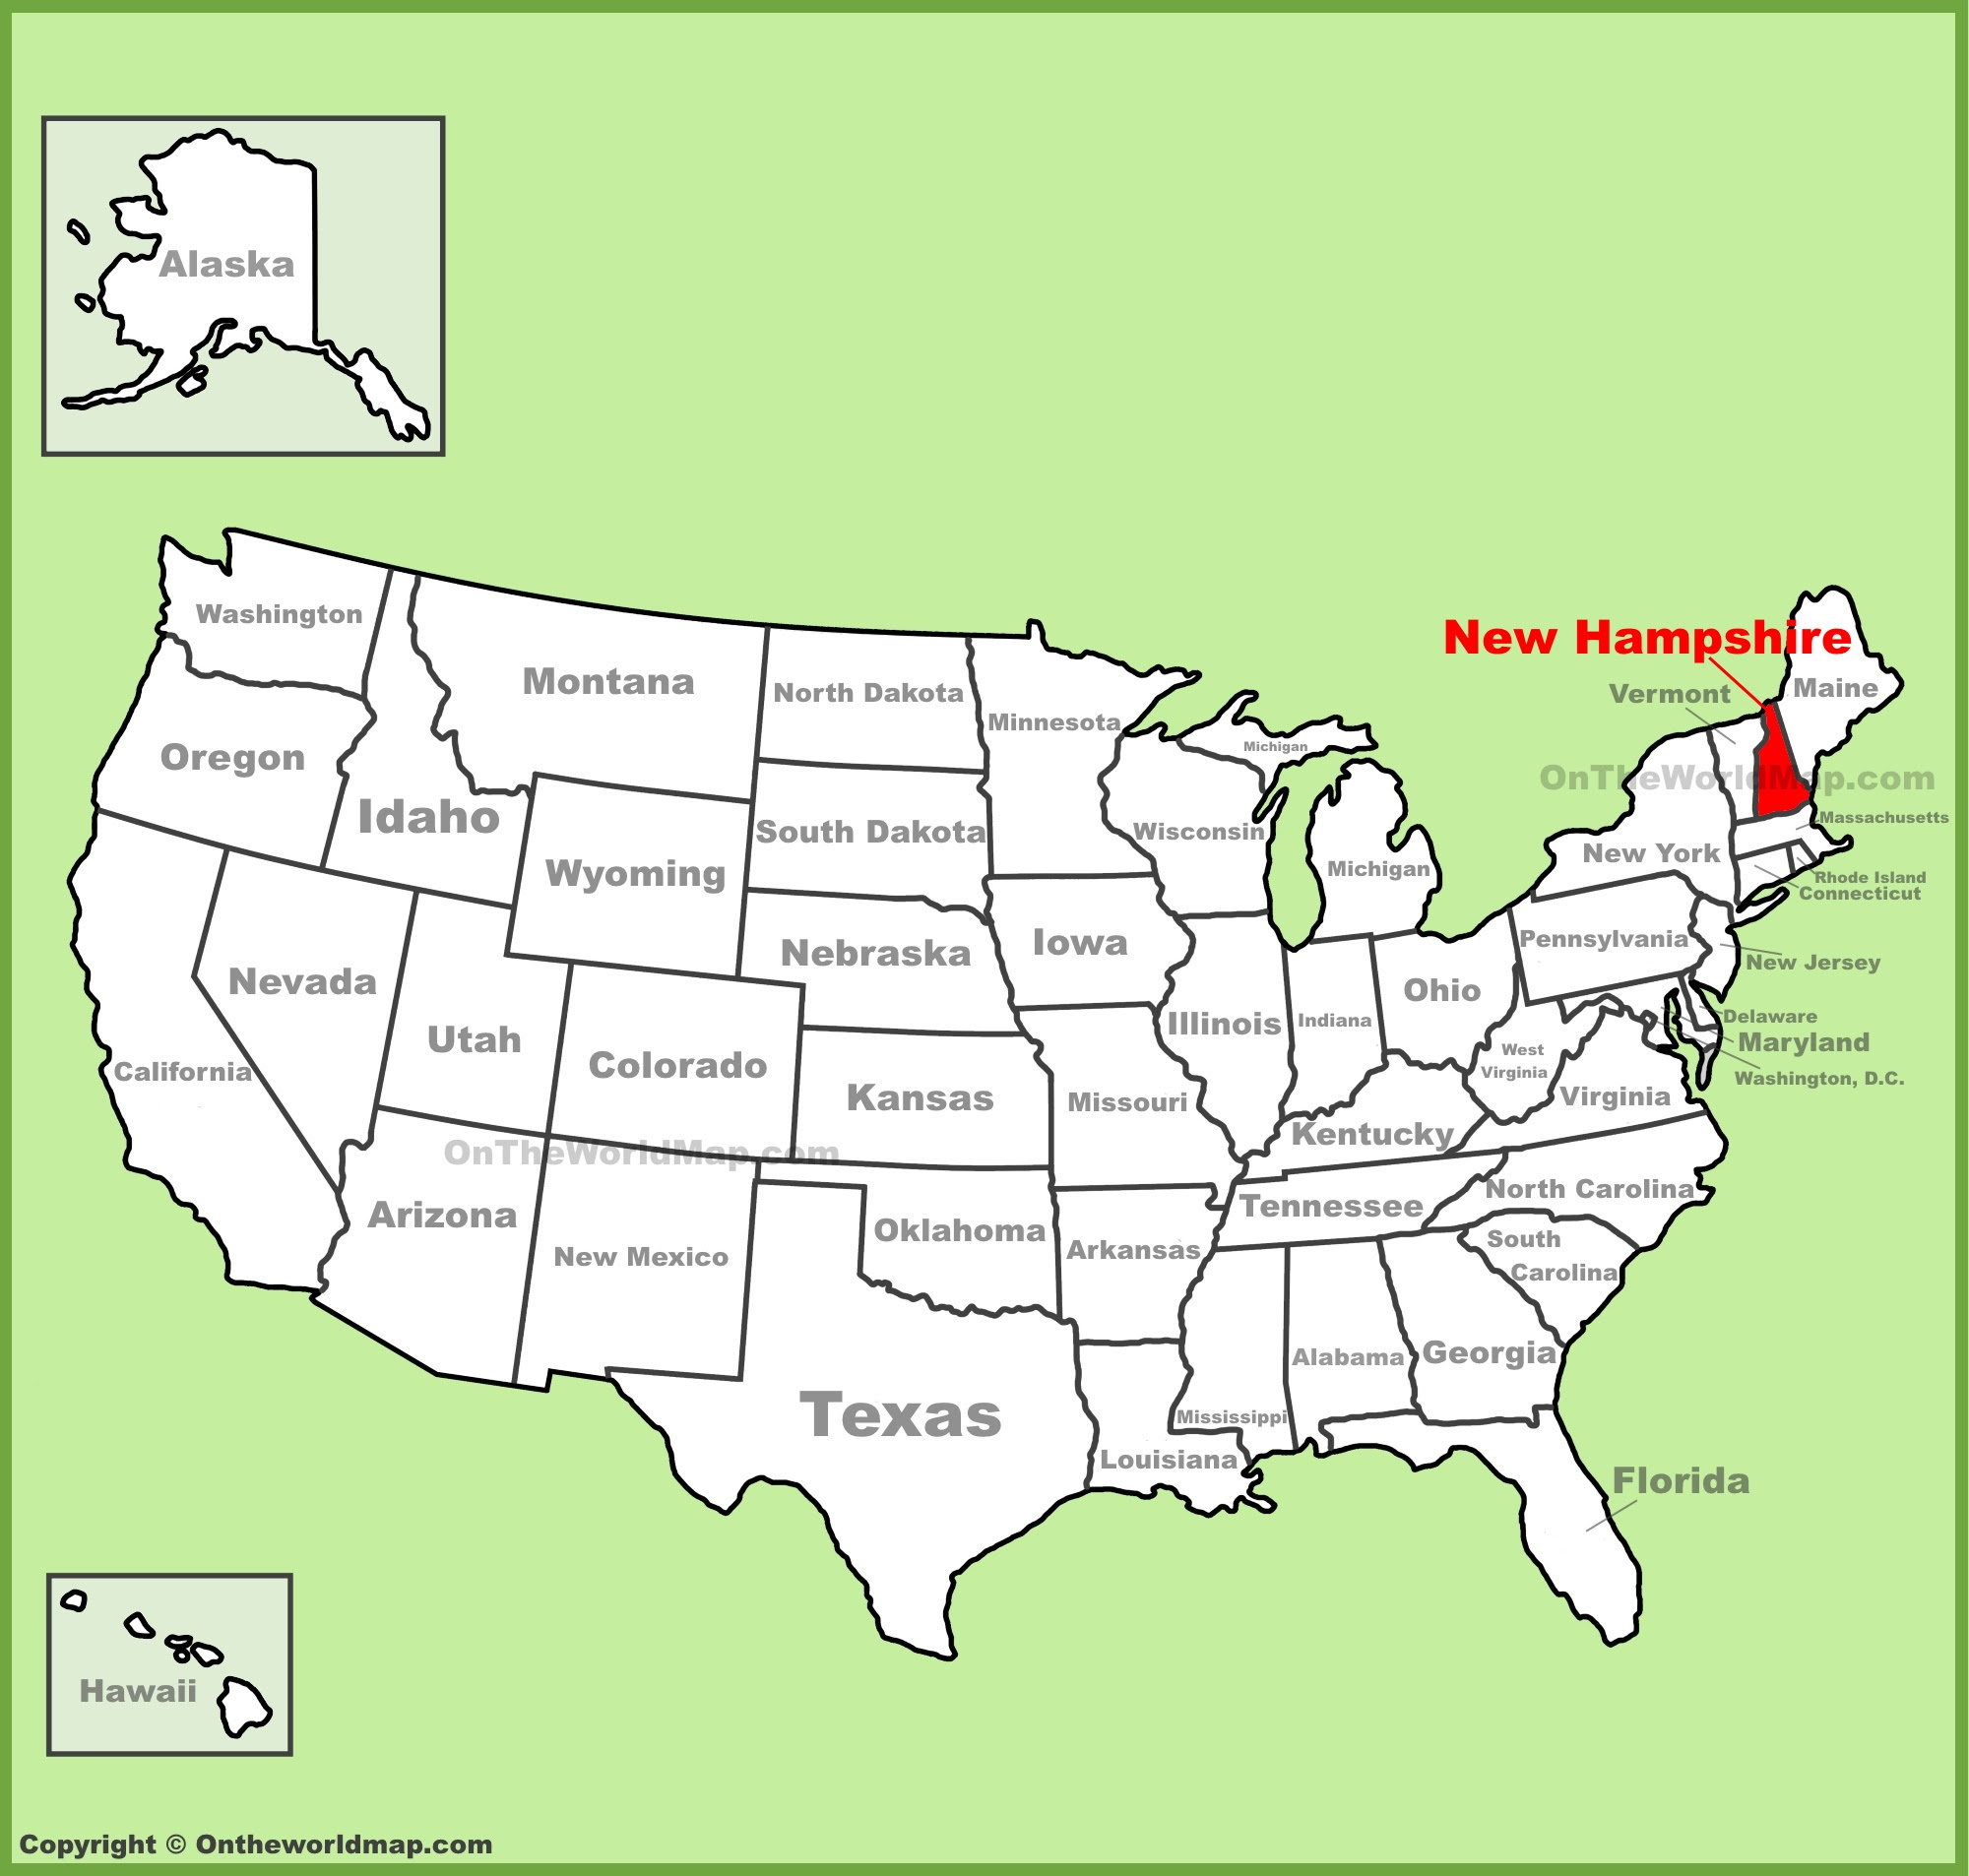 Nh Map Of Towns, Full Size  C2 B7 New Hampshire Location Map, Nh Map Of Towns